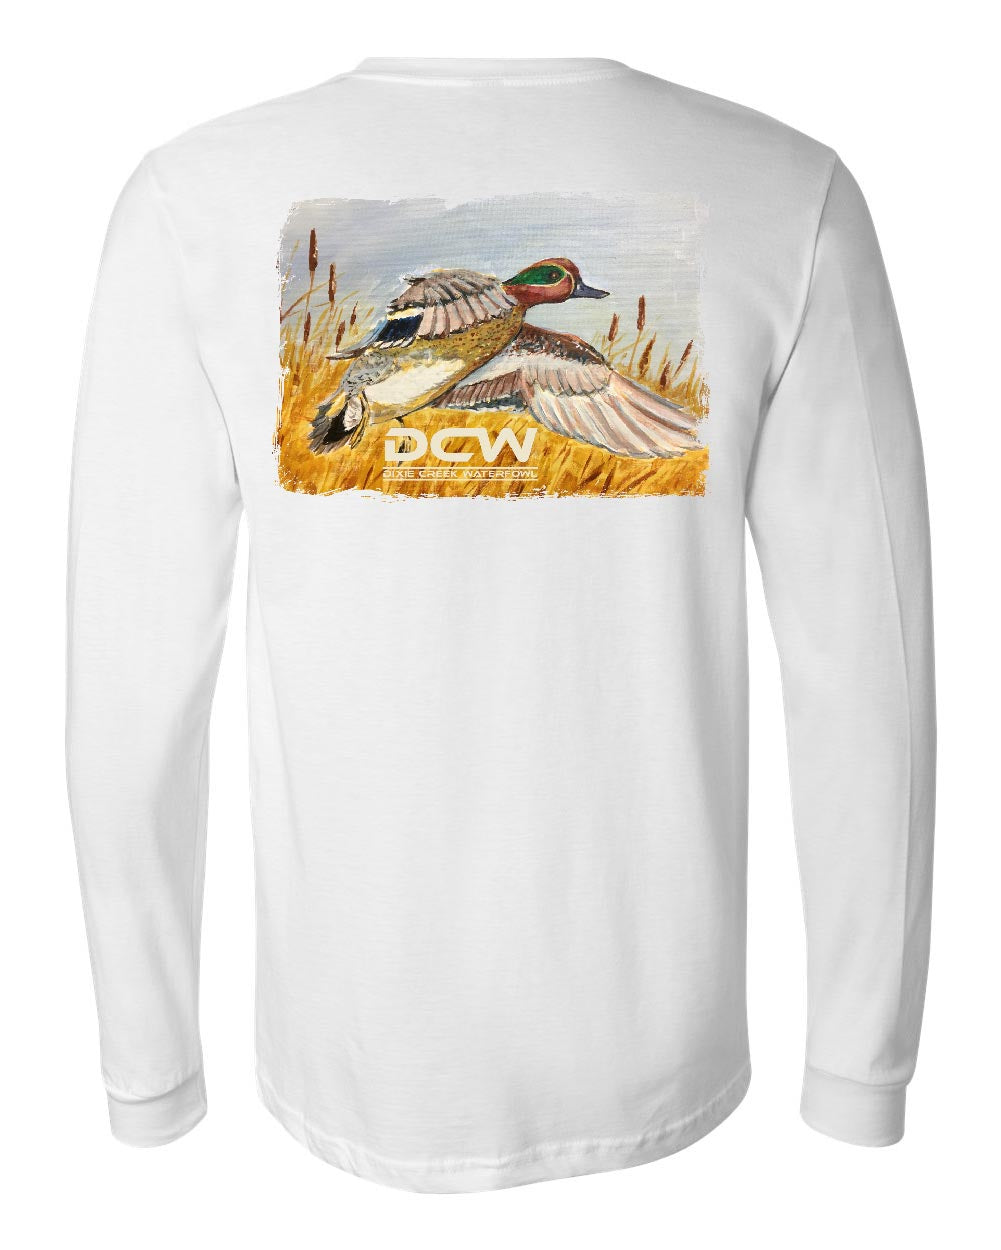 Green Wing Express - White Long Sleeve